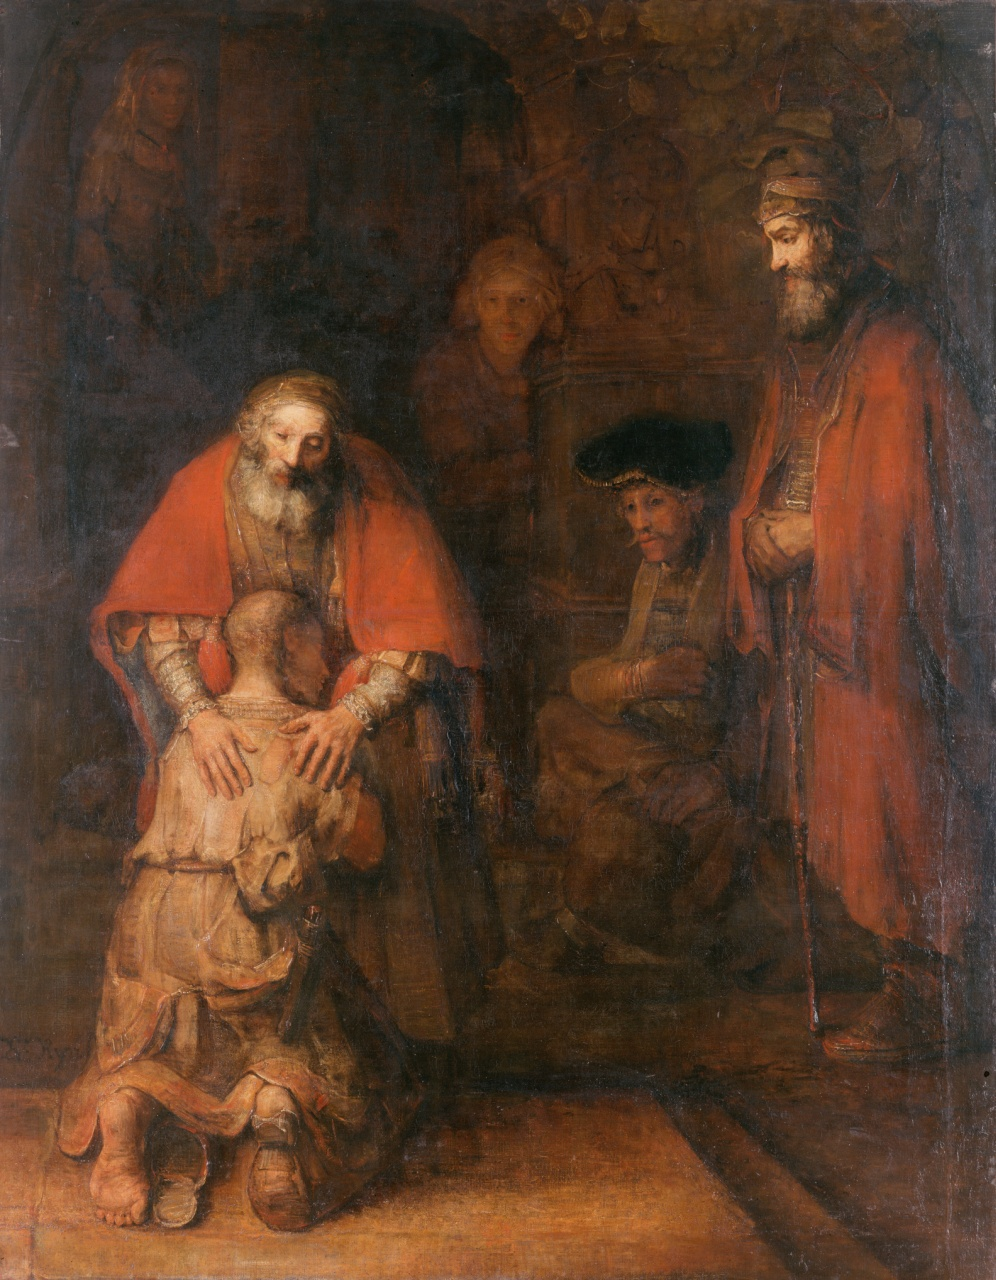 the return of the prodigal son The return of the prodigal son by henri nouwen reviewed by terry akers henri nouwen (1932-1996), a dutch catholic priest, psychologist, professor and author of more than 20 books, was well-loved and widely received in.